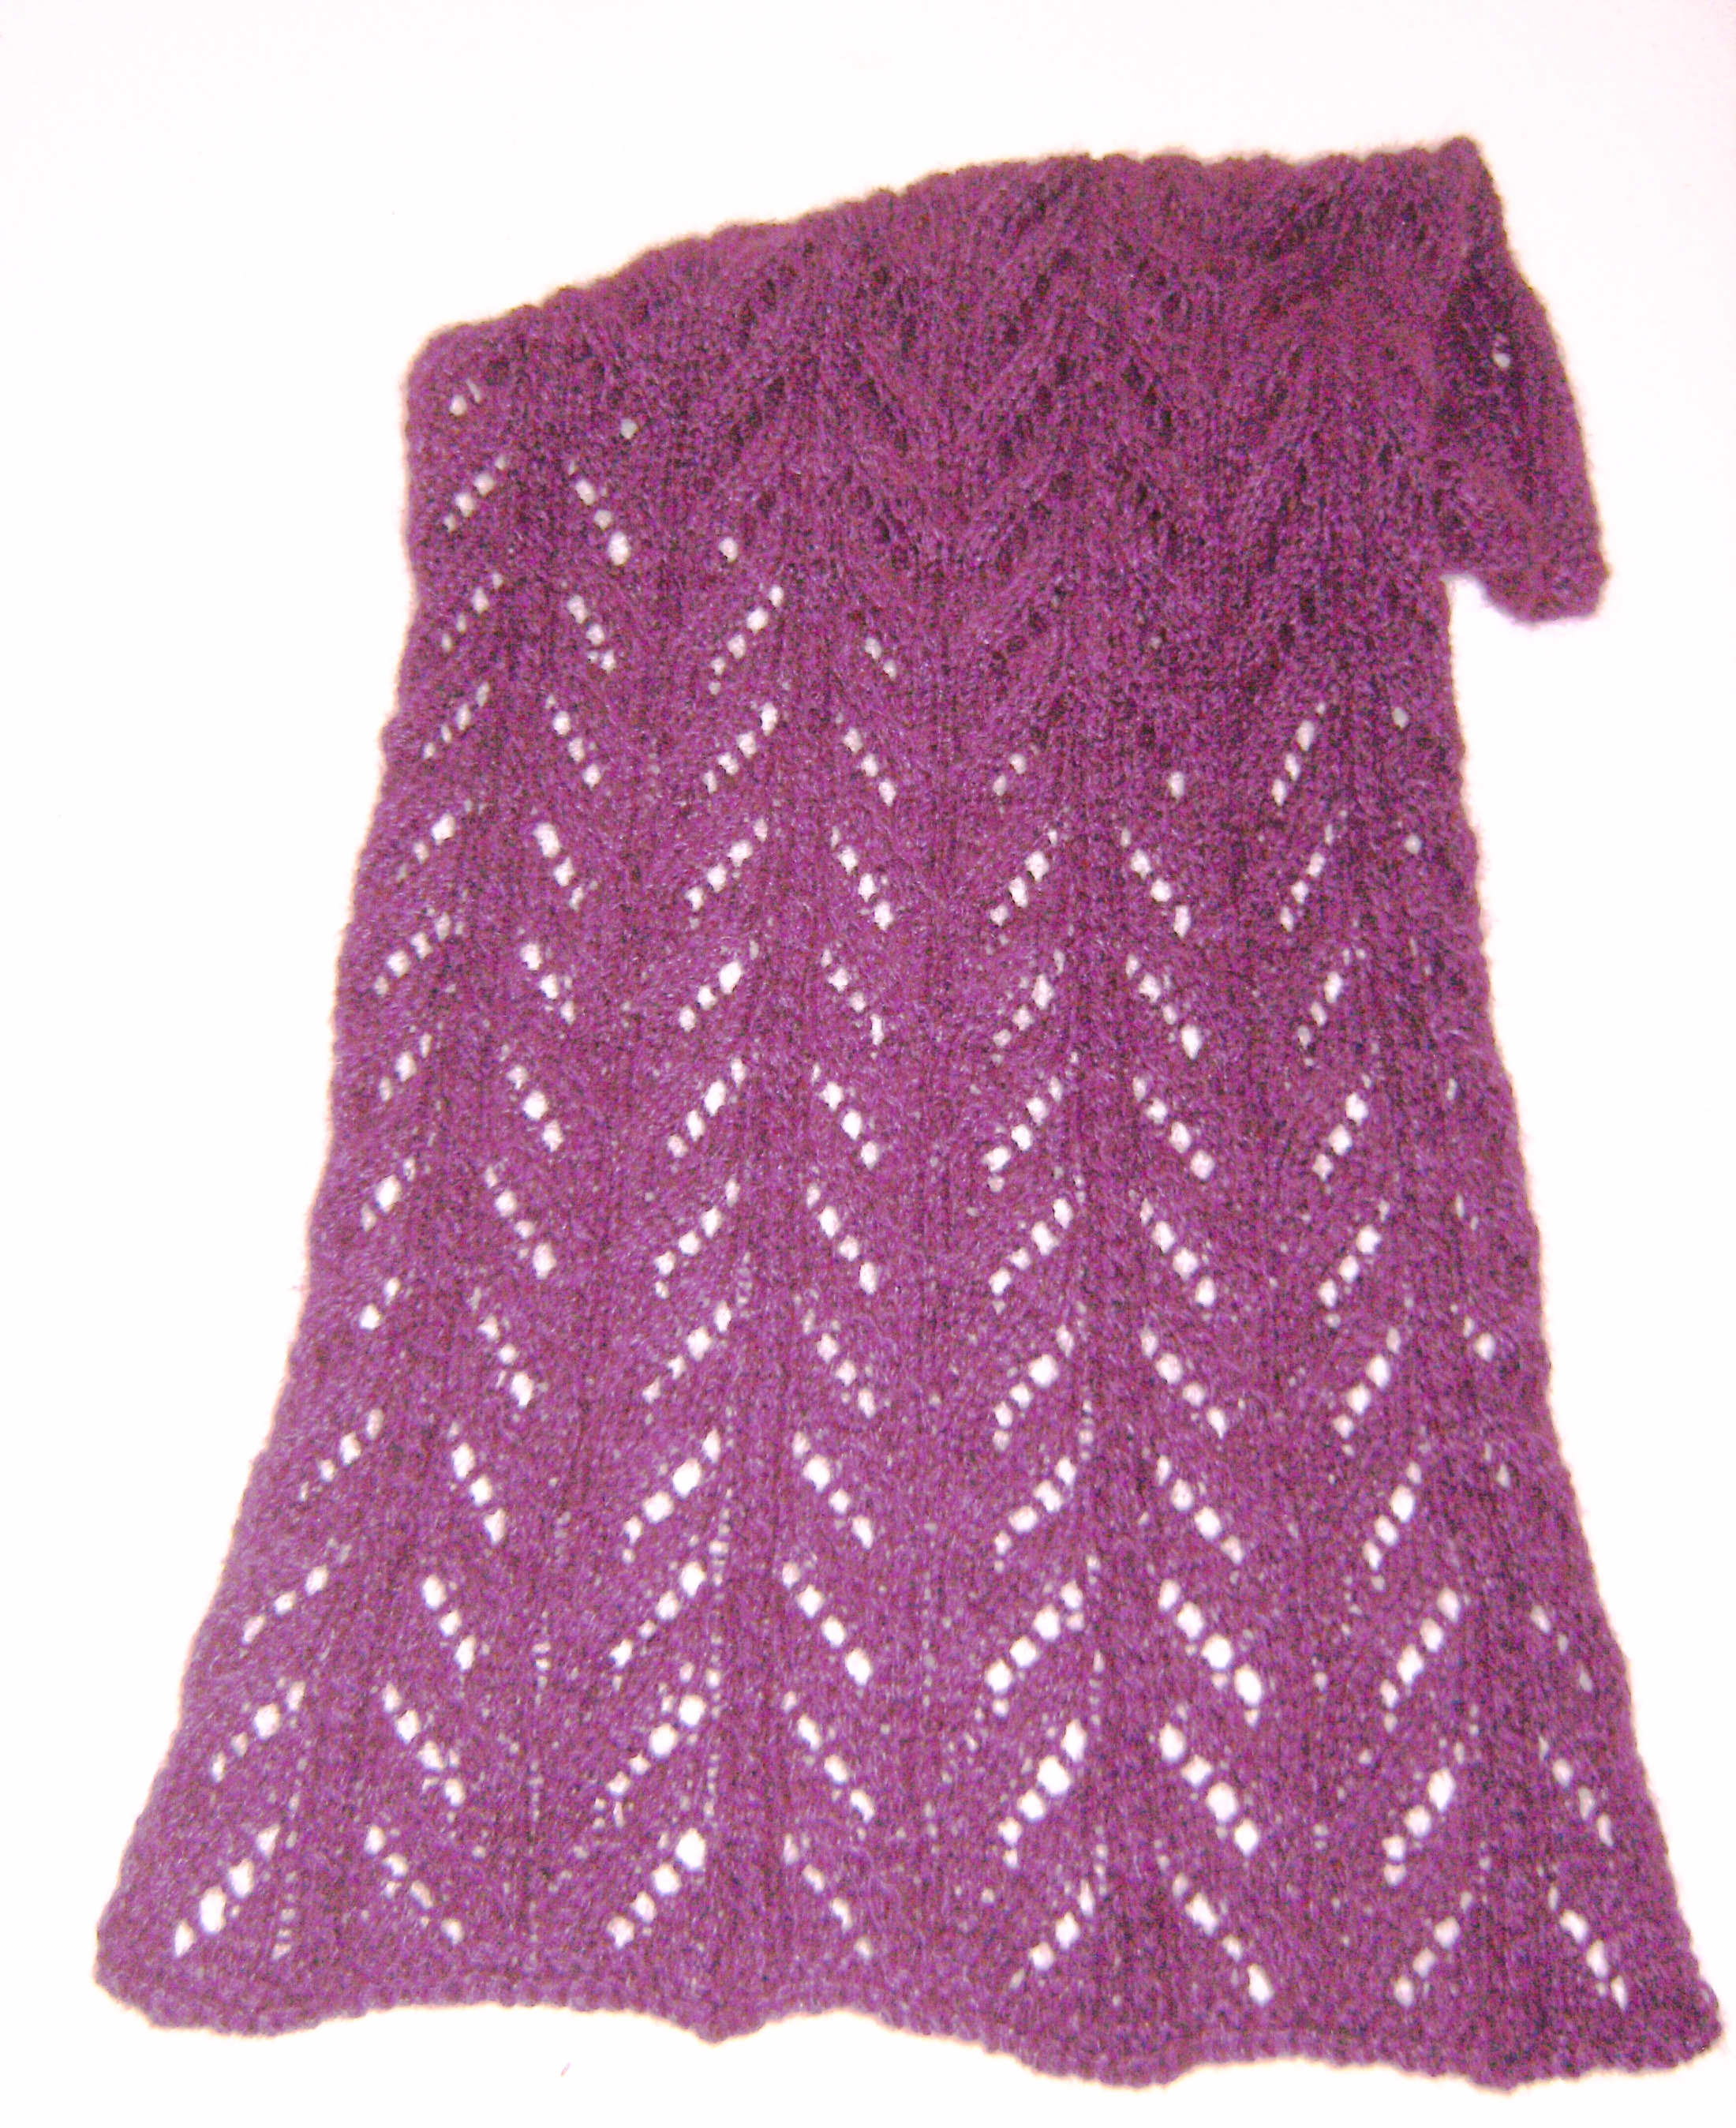 Easy Crochet Shawl Patterns Beginners : BEGINNER CROCHETED SHAWL PATTERN Crochet Patterns